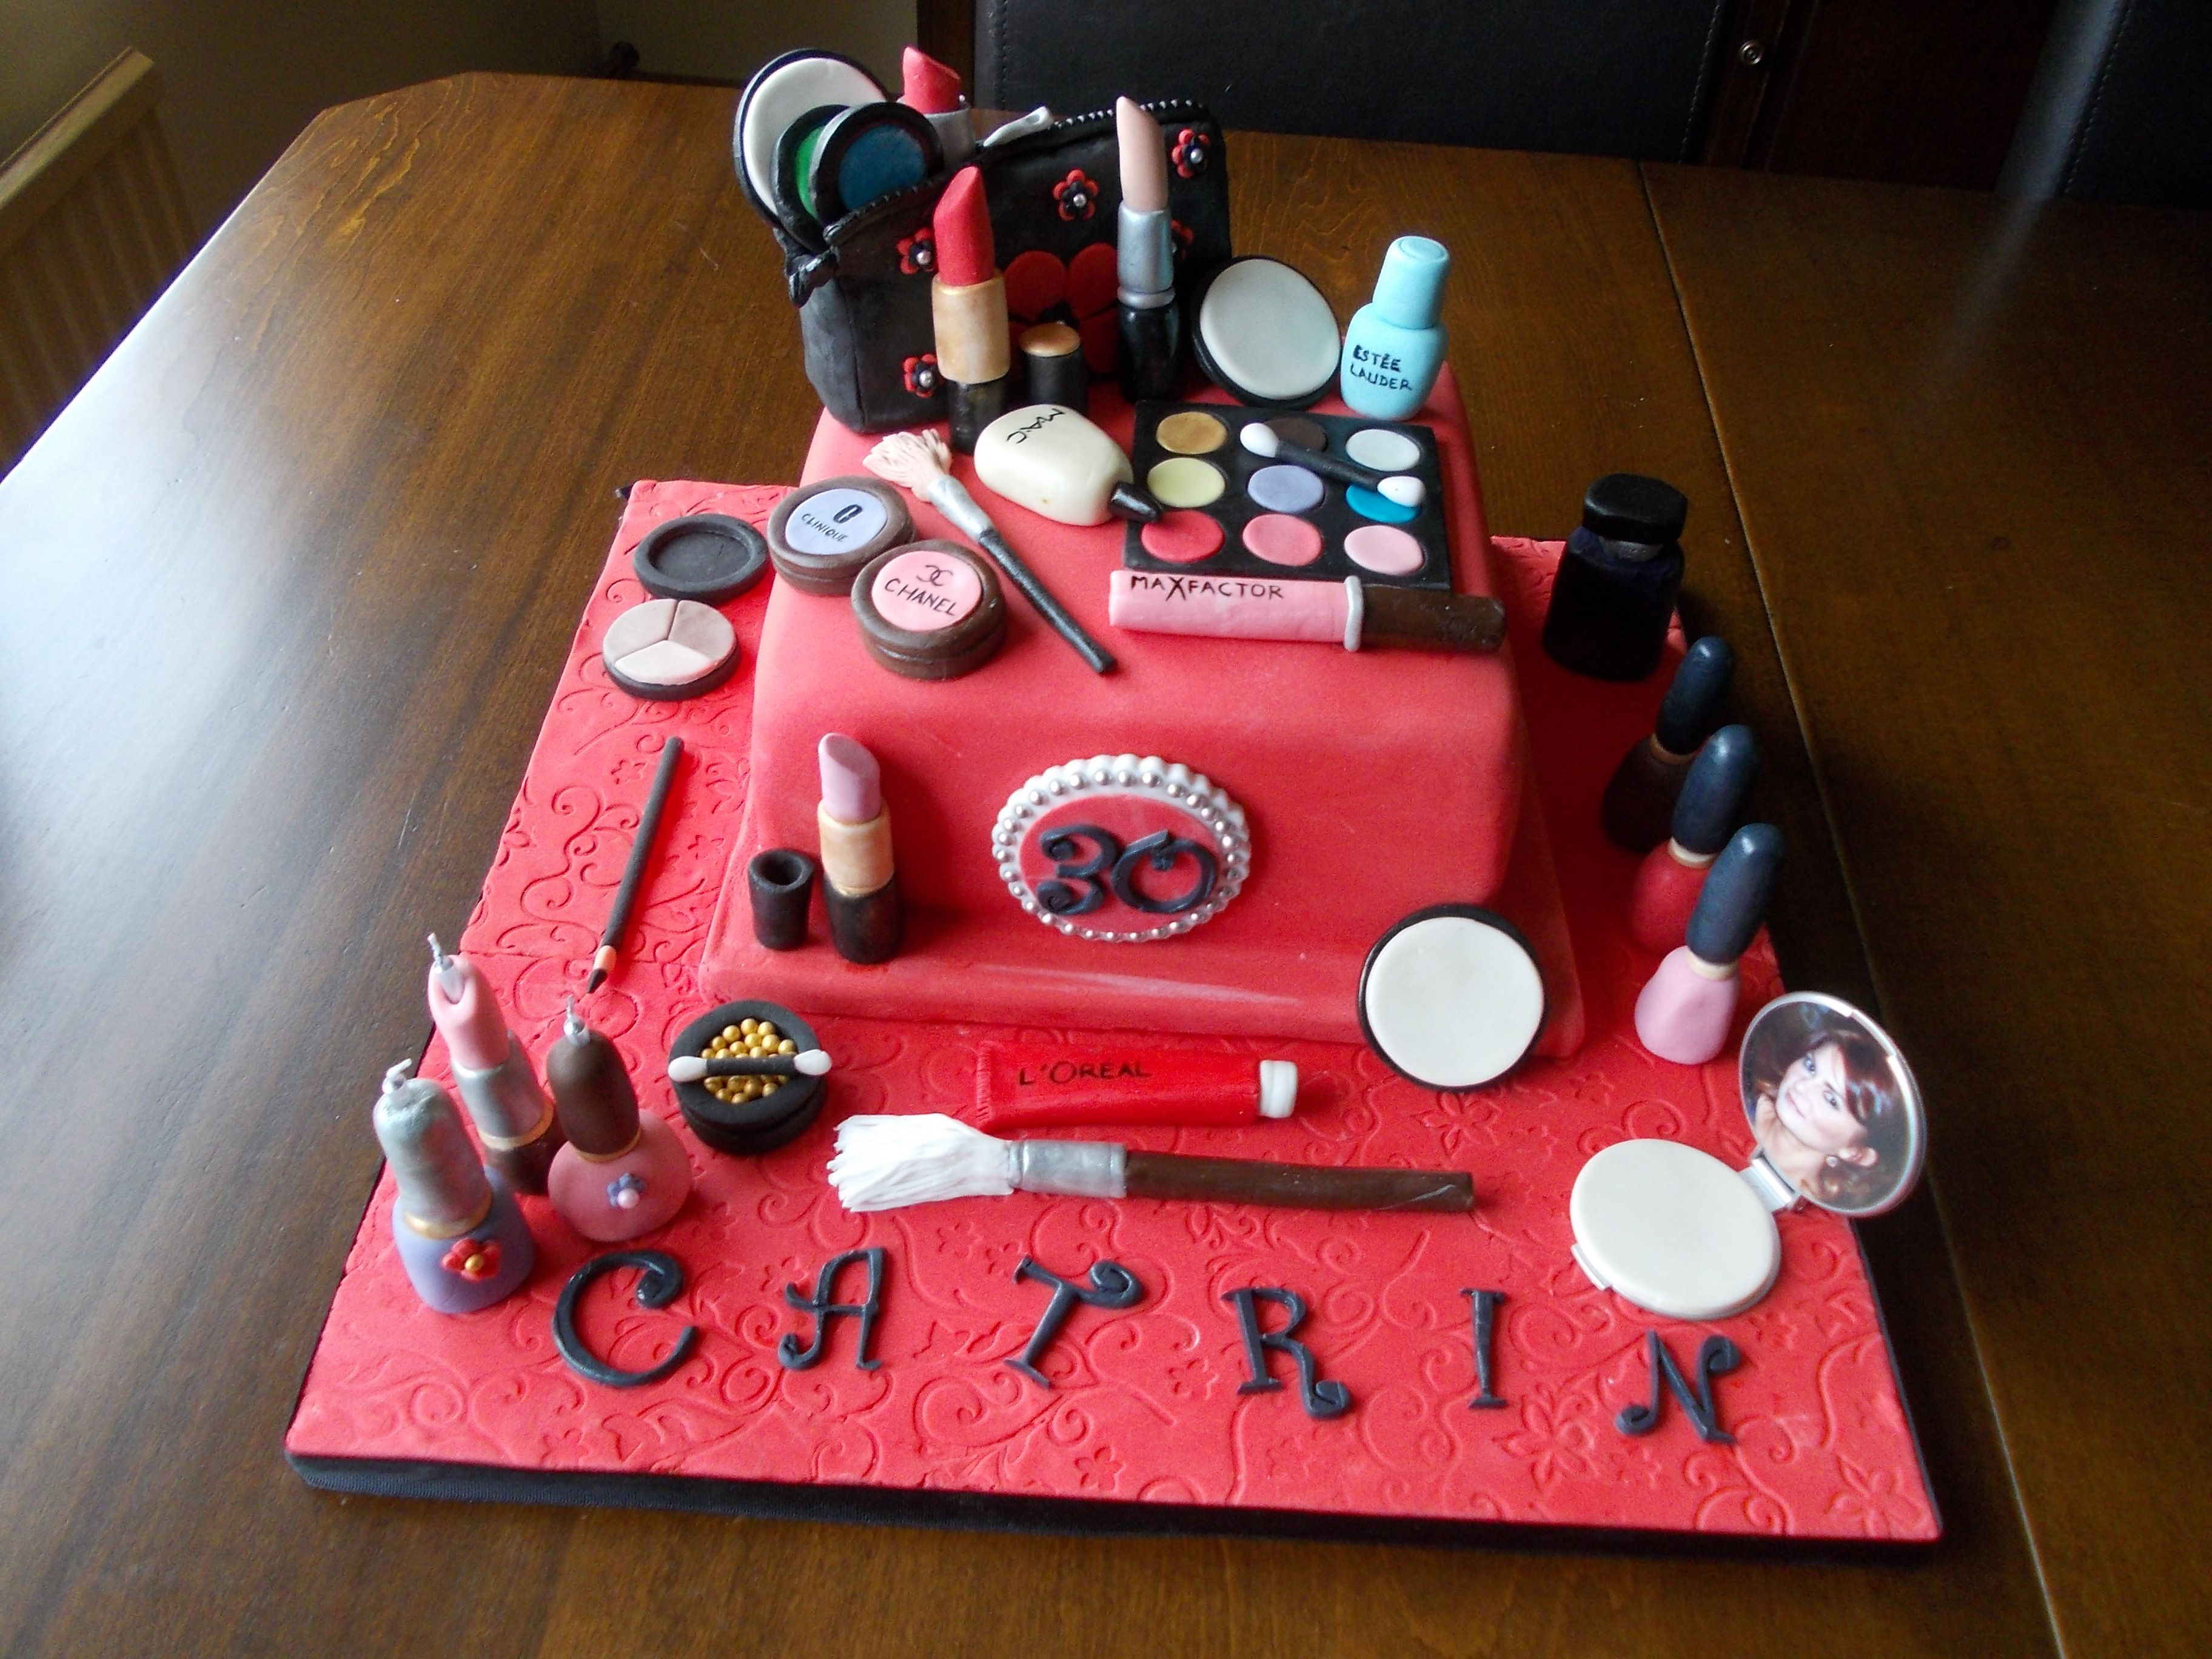 Catrins 30th birthday cake Catrin is a makeup artist whose